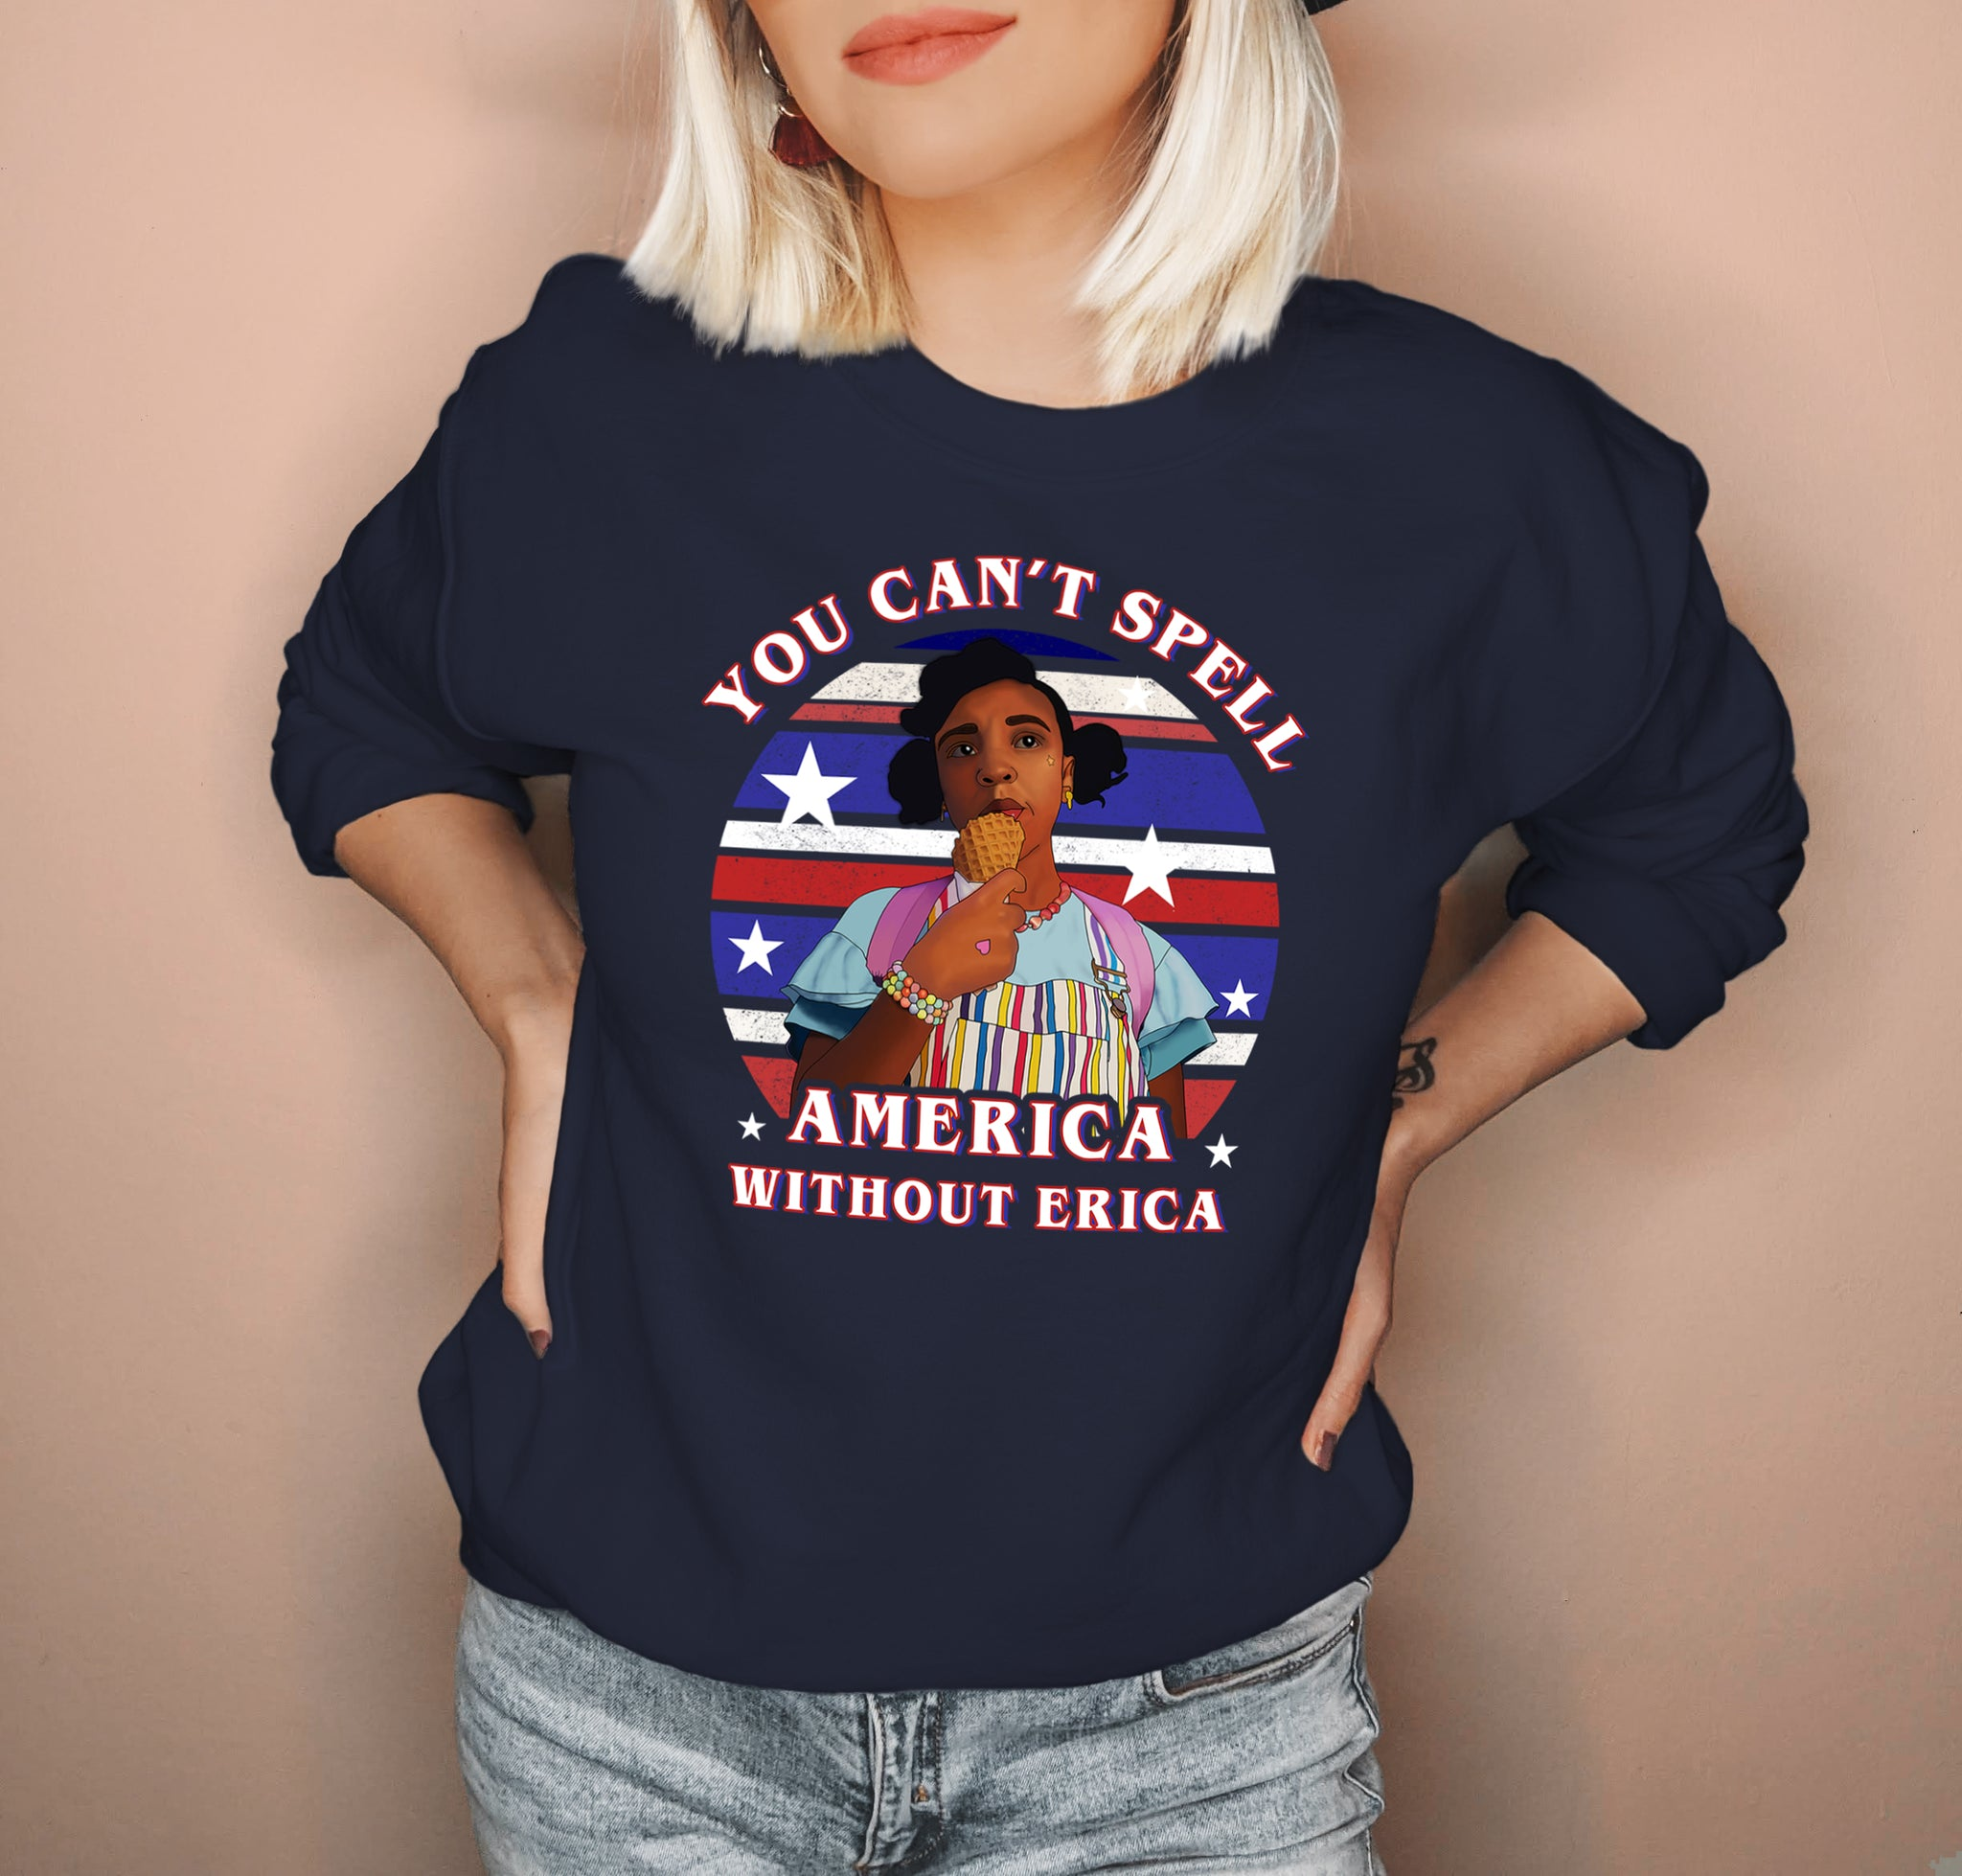 Navy sweatshirt with erica from stranger things that says you can't spell america without erica - HighCiti